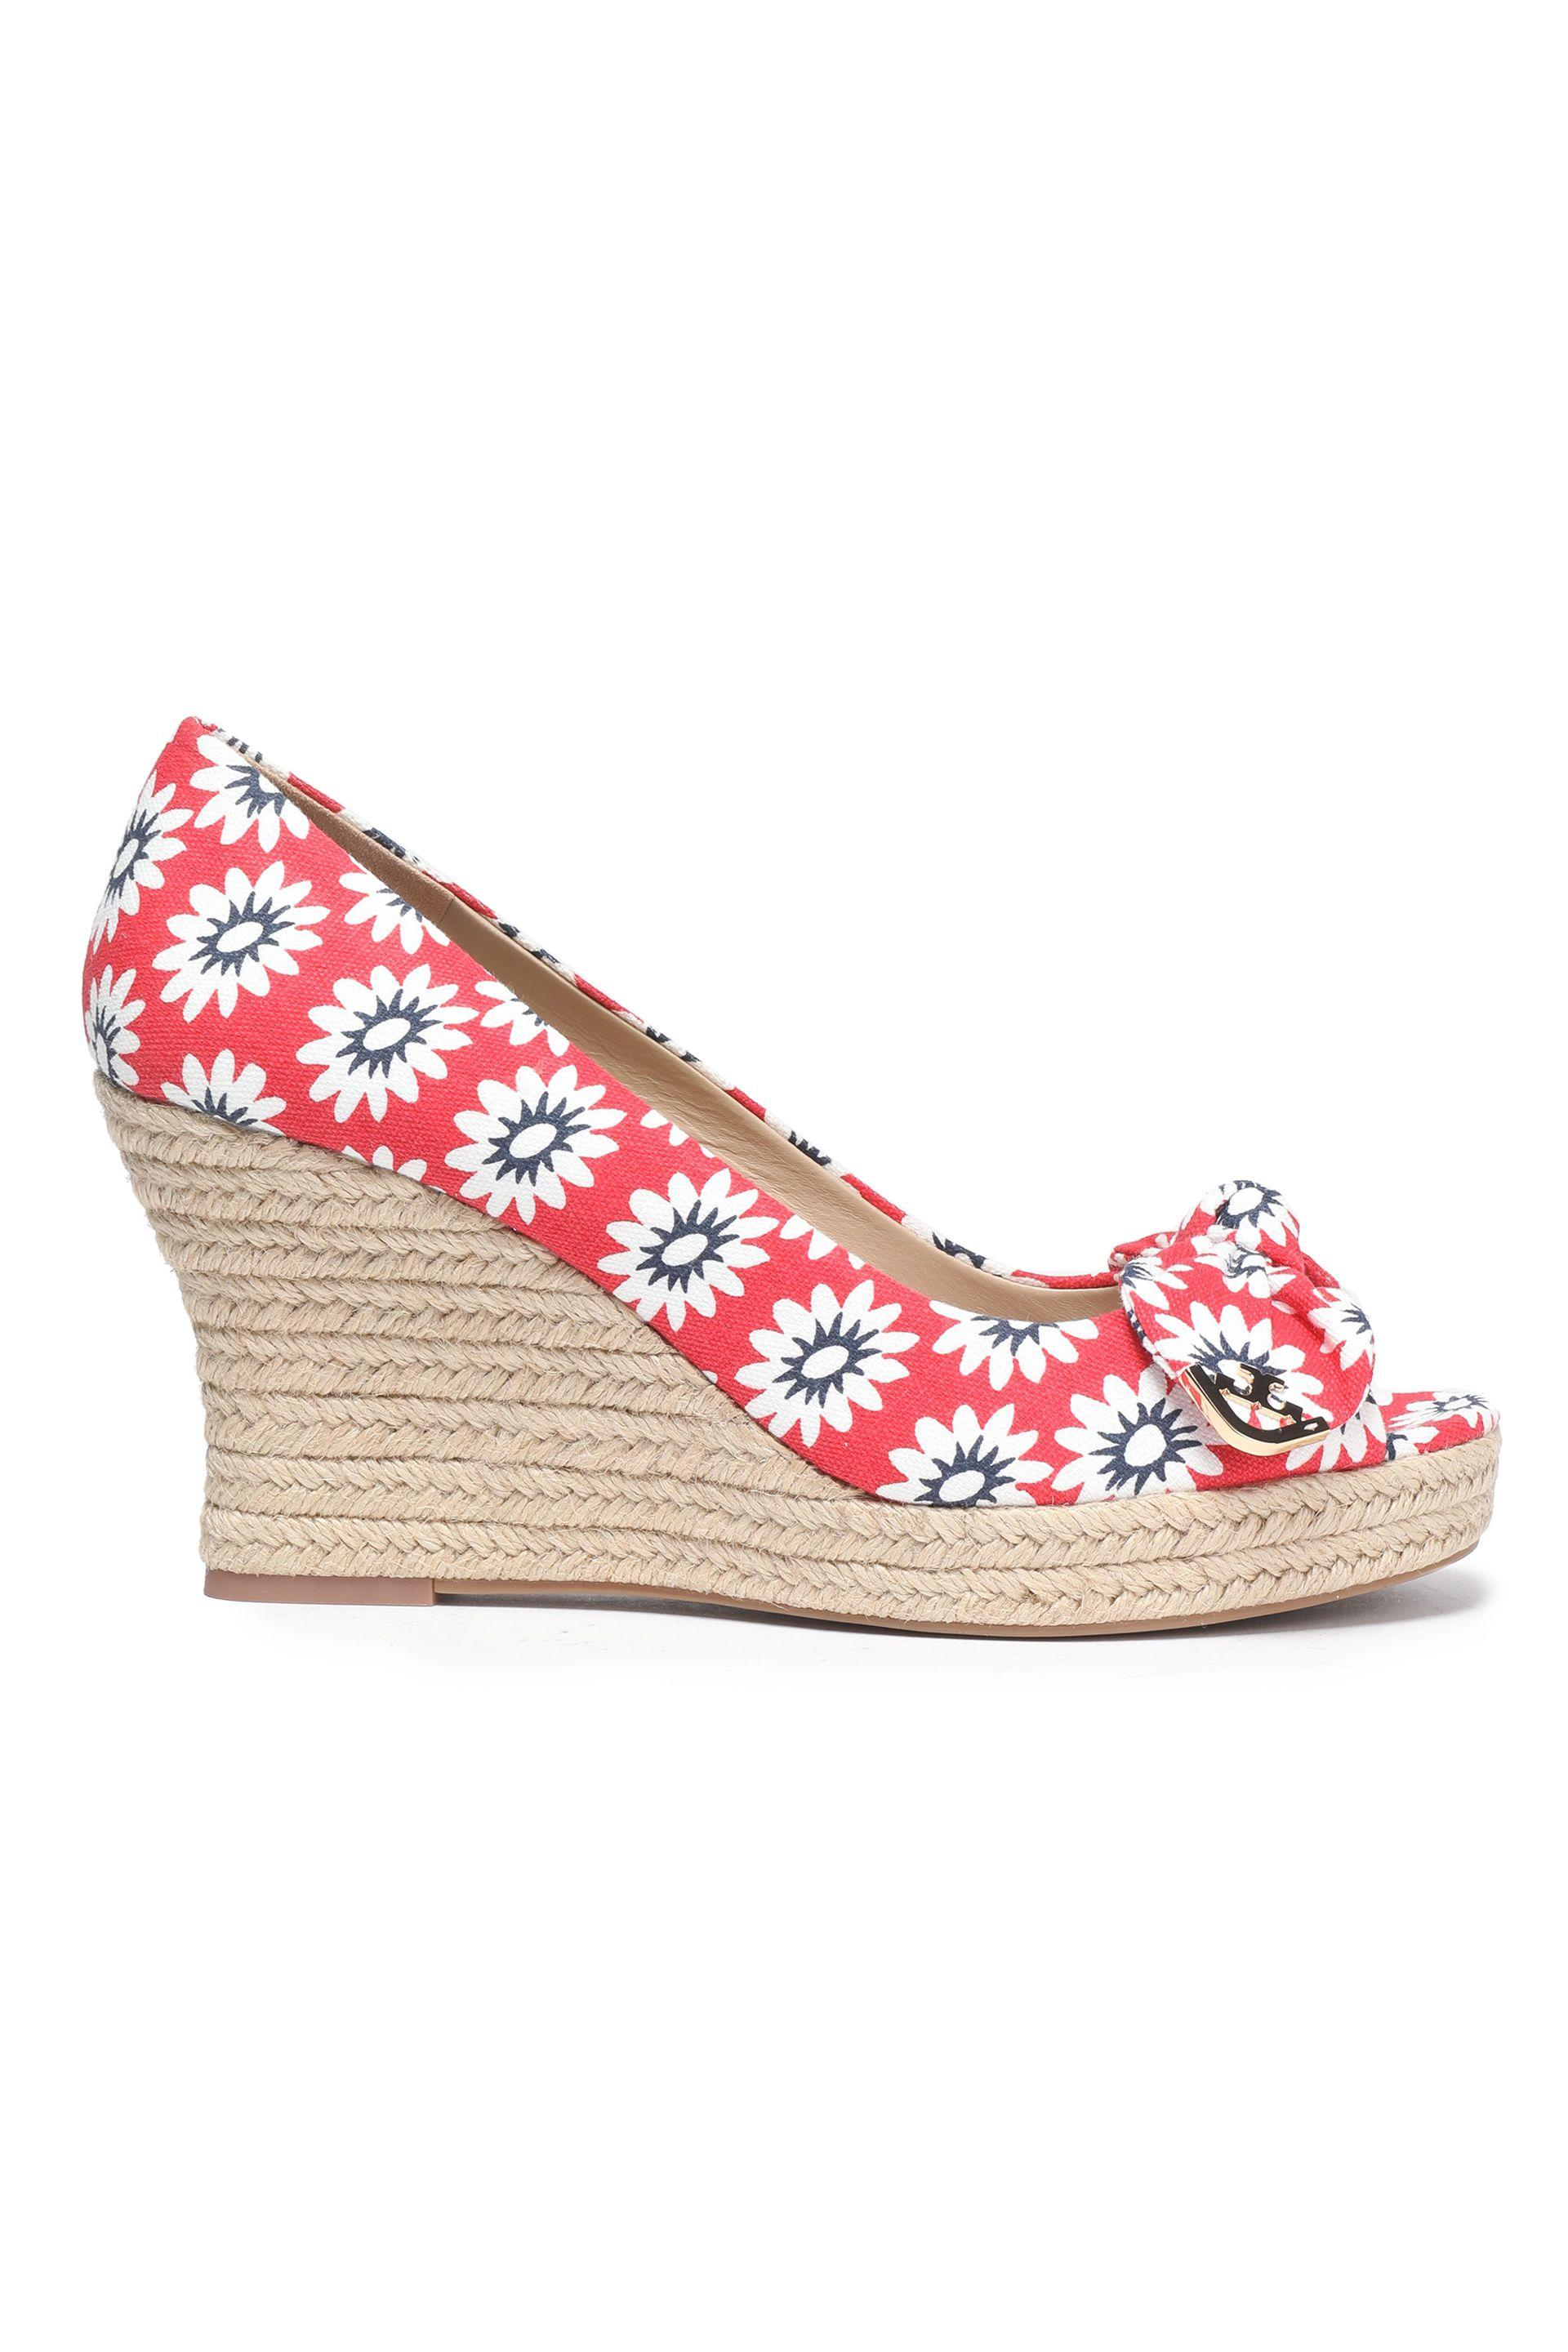 919e02a18f863d Tory Burch. Women s Woman Bow-embellished Printed Wedge Espadrilles Red